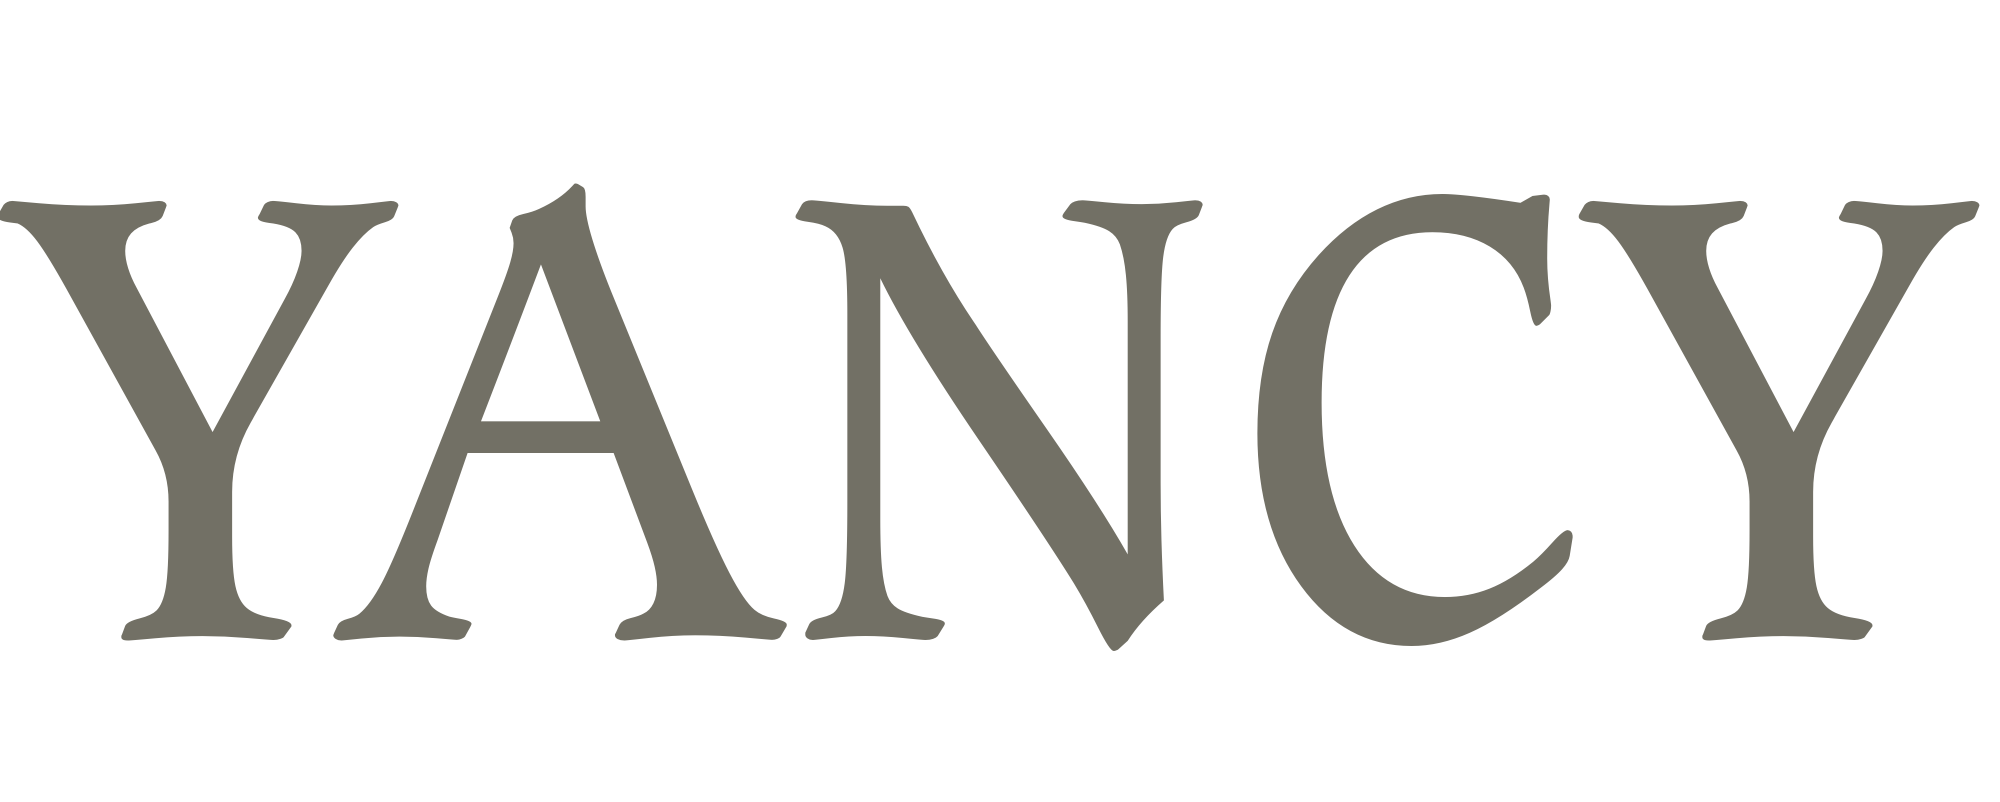 Yancy - Name's Meaning of Yancy